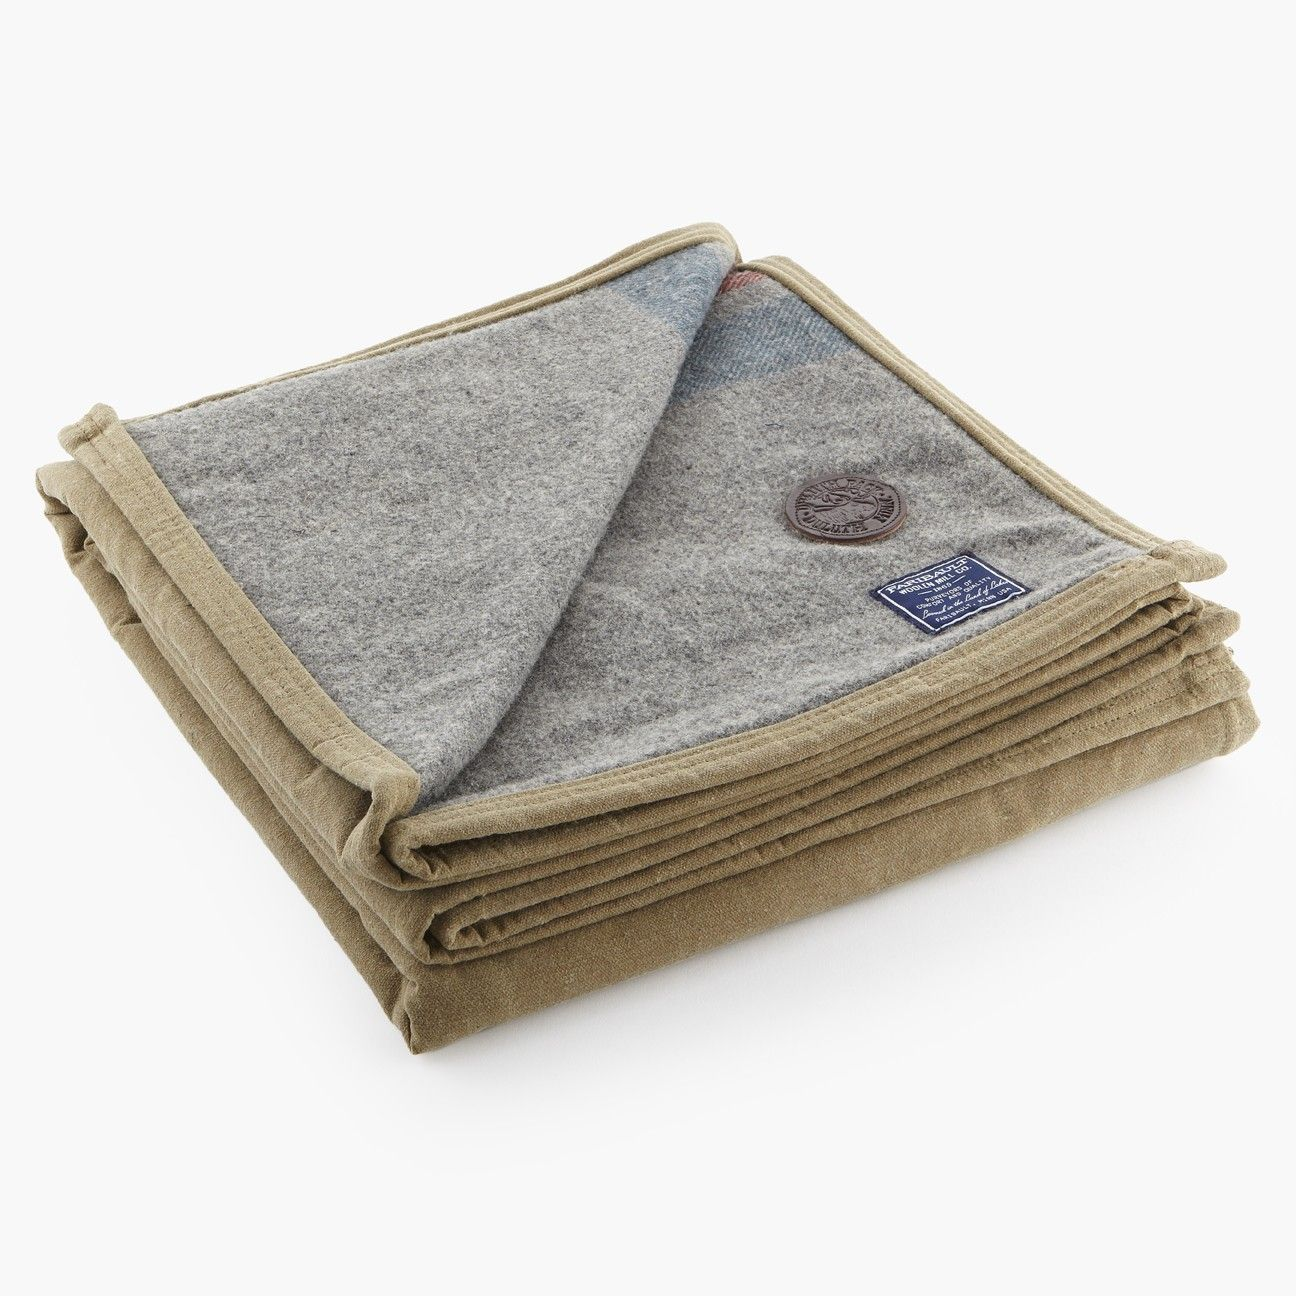 duluth pack wool camper one side is faribault blanket the other